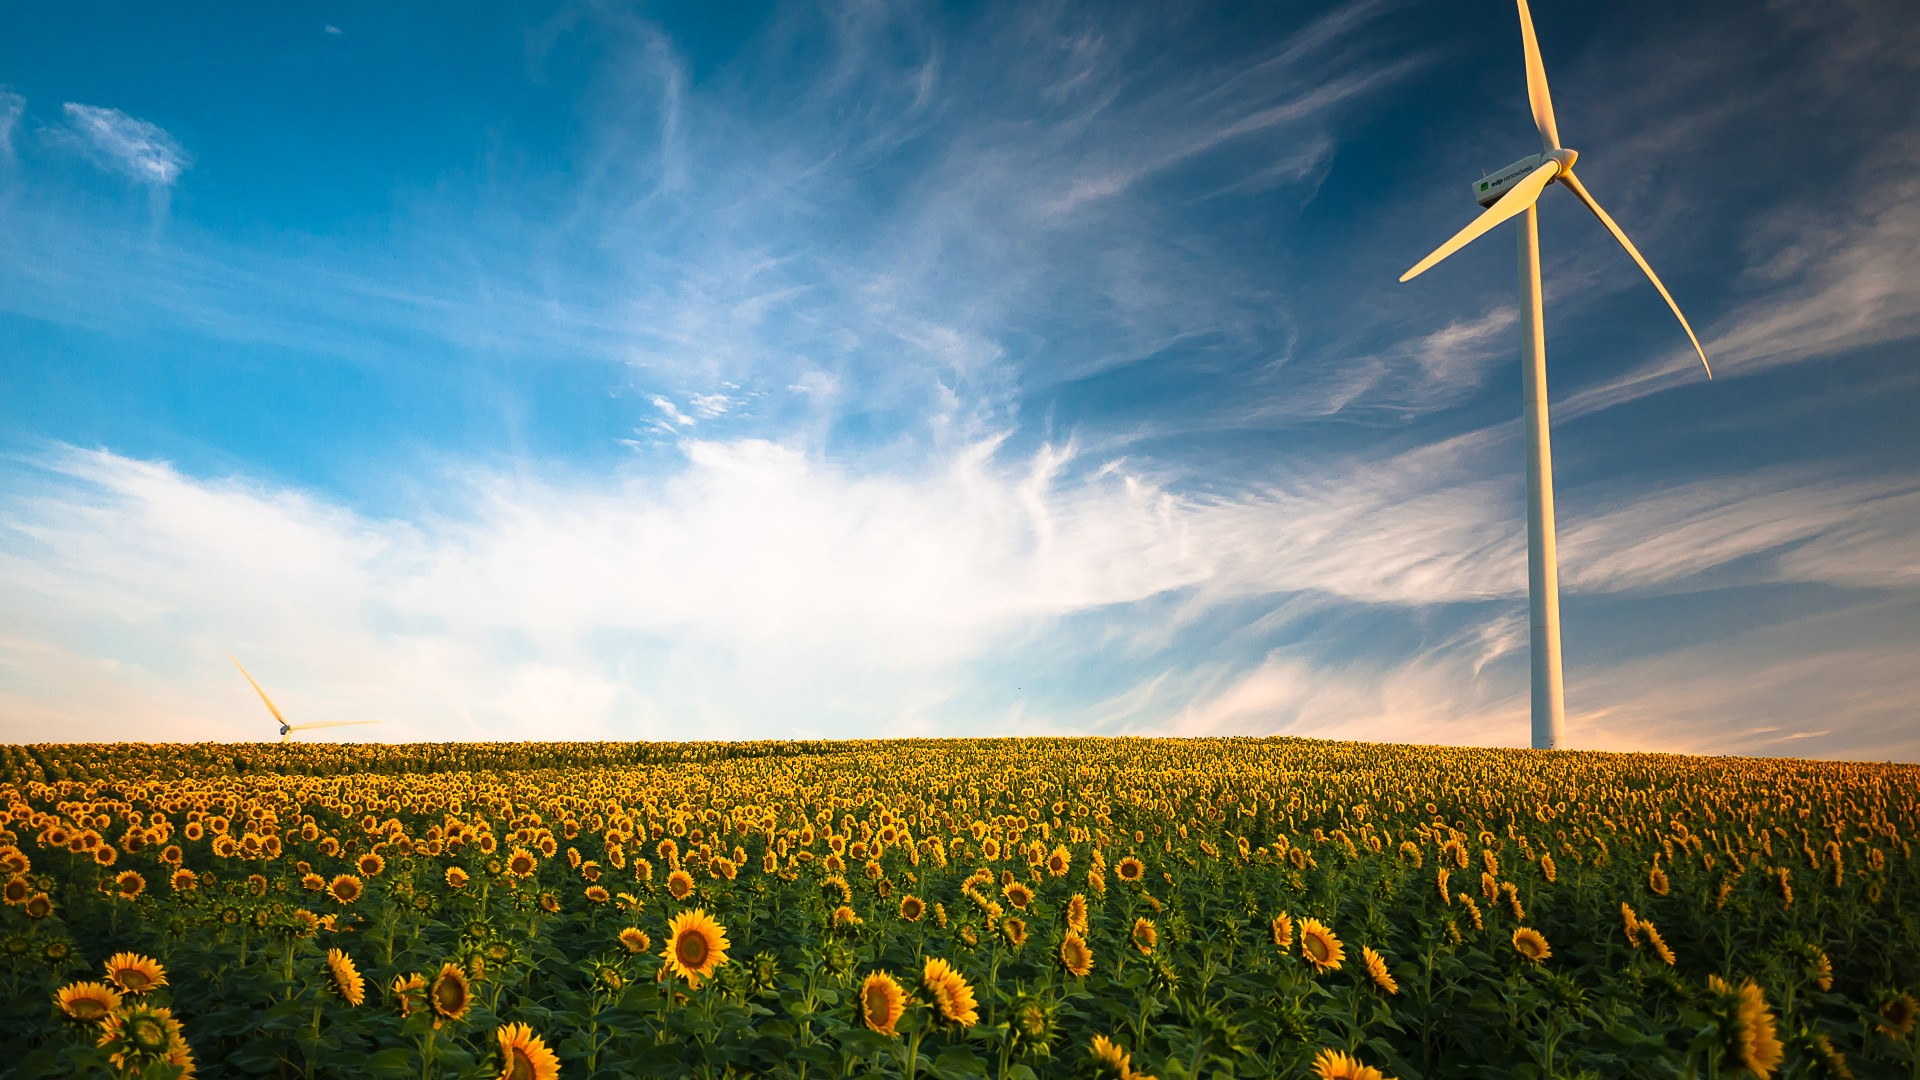 3d Wallpaper For Ipad 4 Wind Turbine Sunflower Field 4k Wallpapers Hd Wallpapers